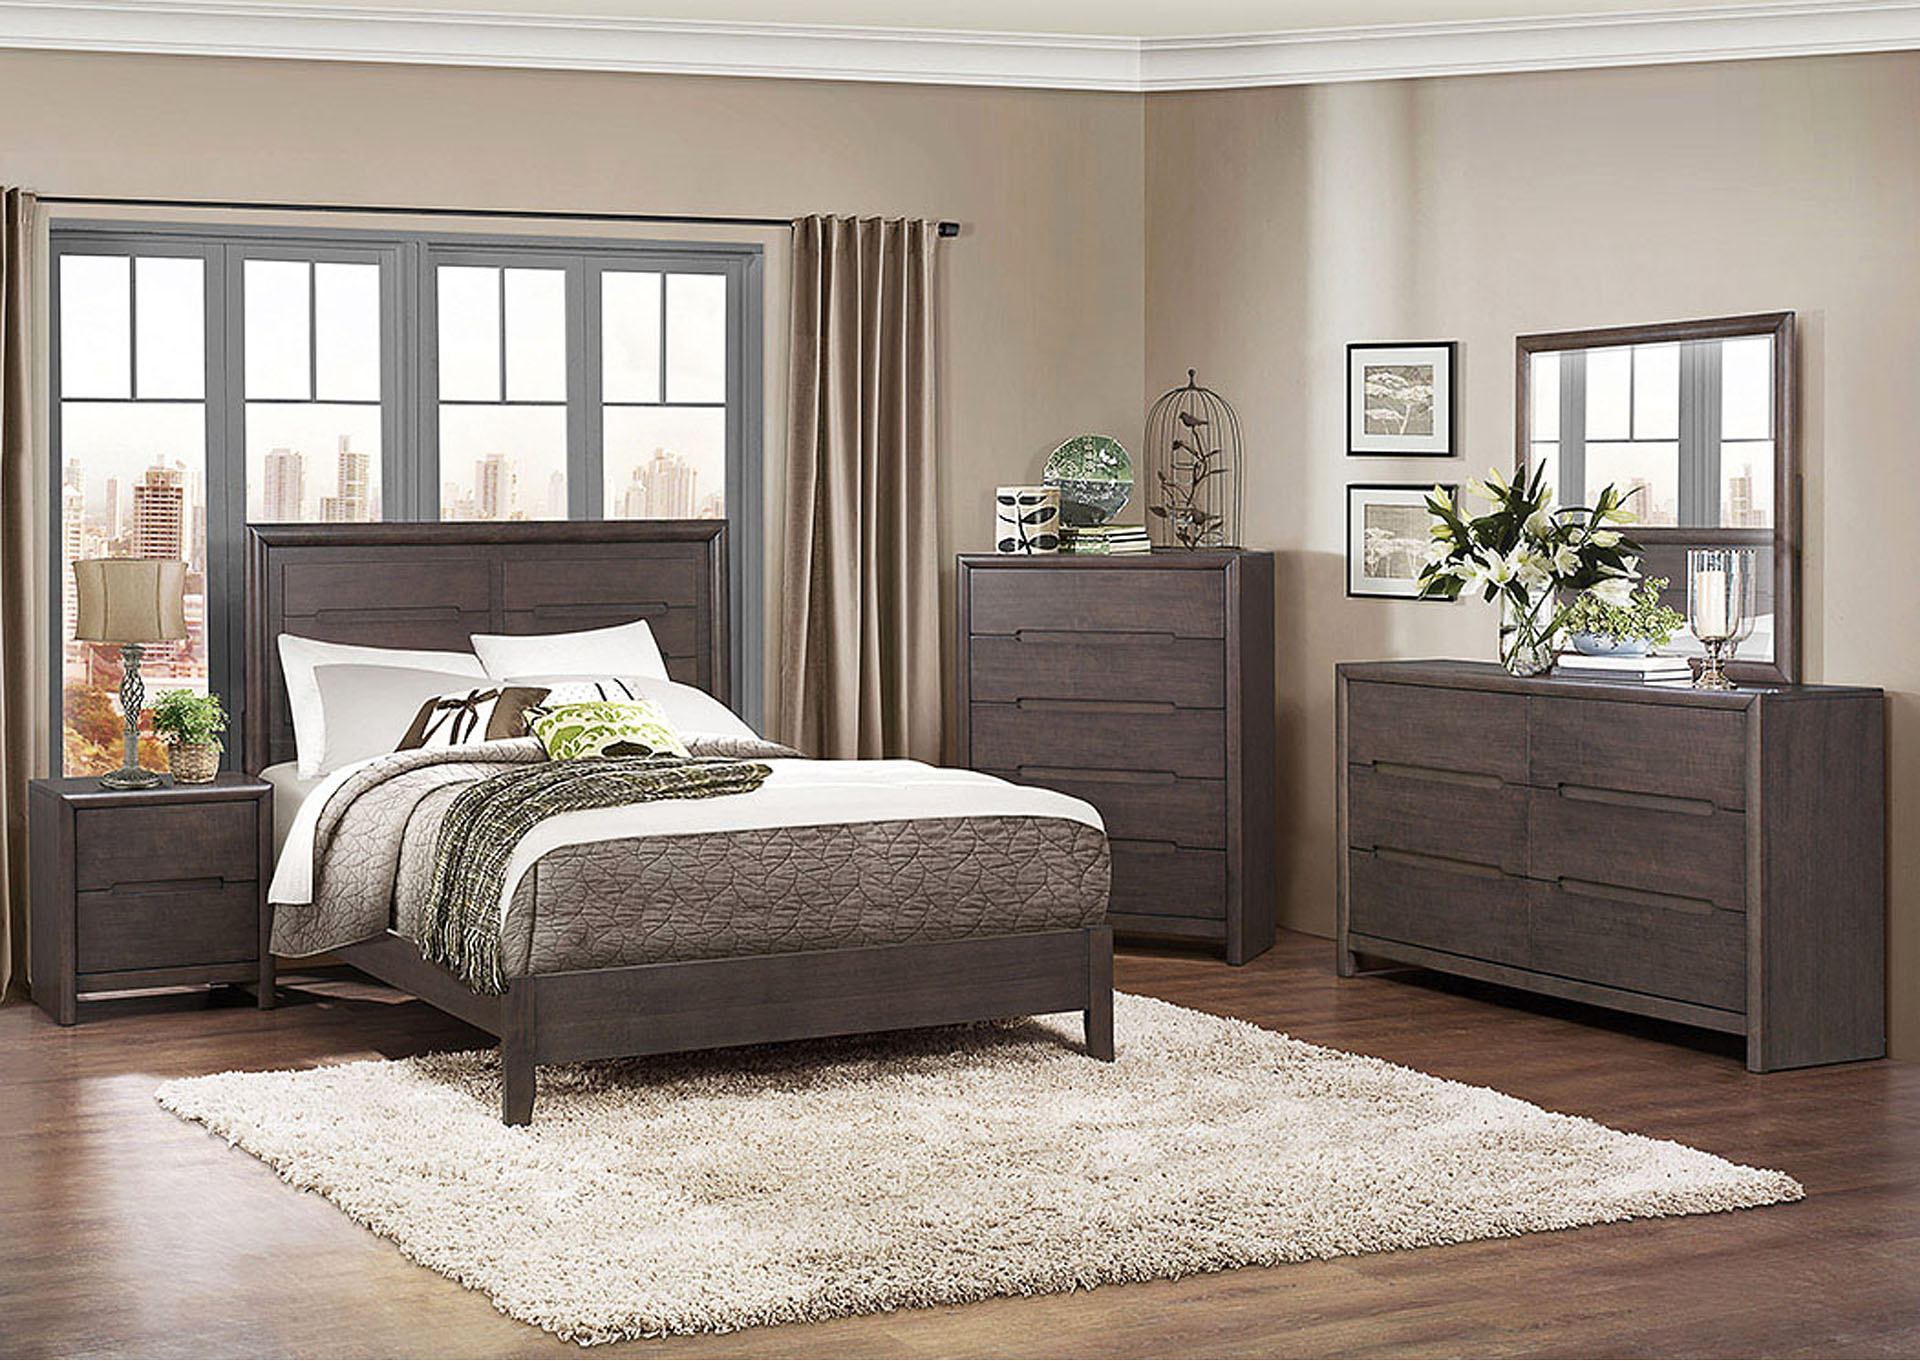 Lavinia Weathered Gray Queen Platform Bed w/ Dresser, Mirror and 2 Nightstands,Homelegance